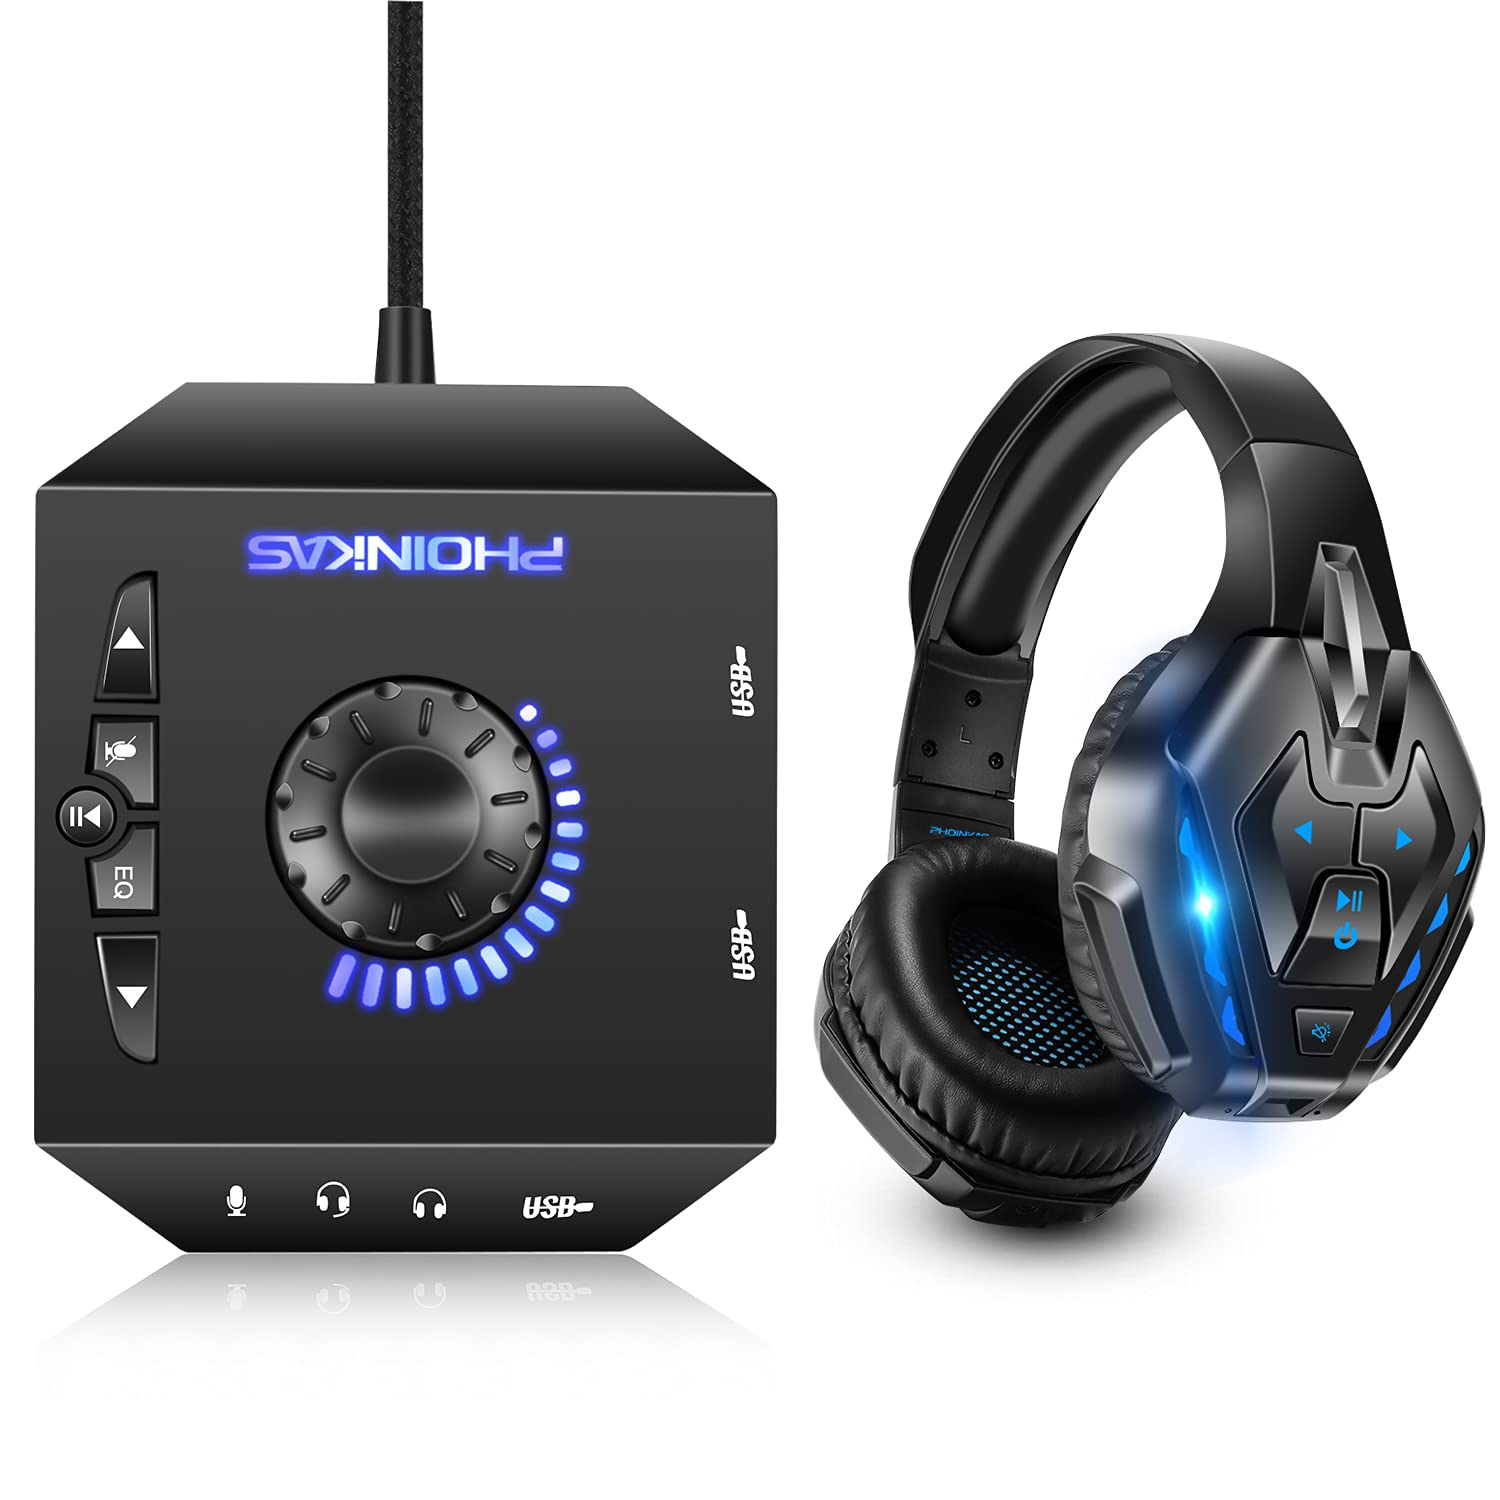 T10 External Sound Card B3510 Wired Headset Gaming PC for NEW before selling PS4 Cheap mail order sales